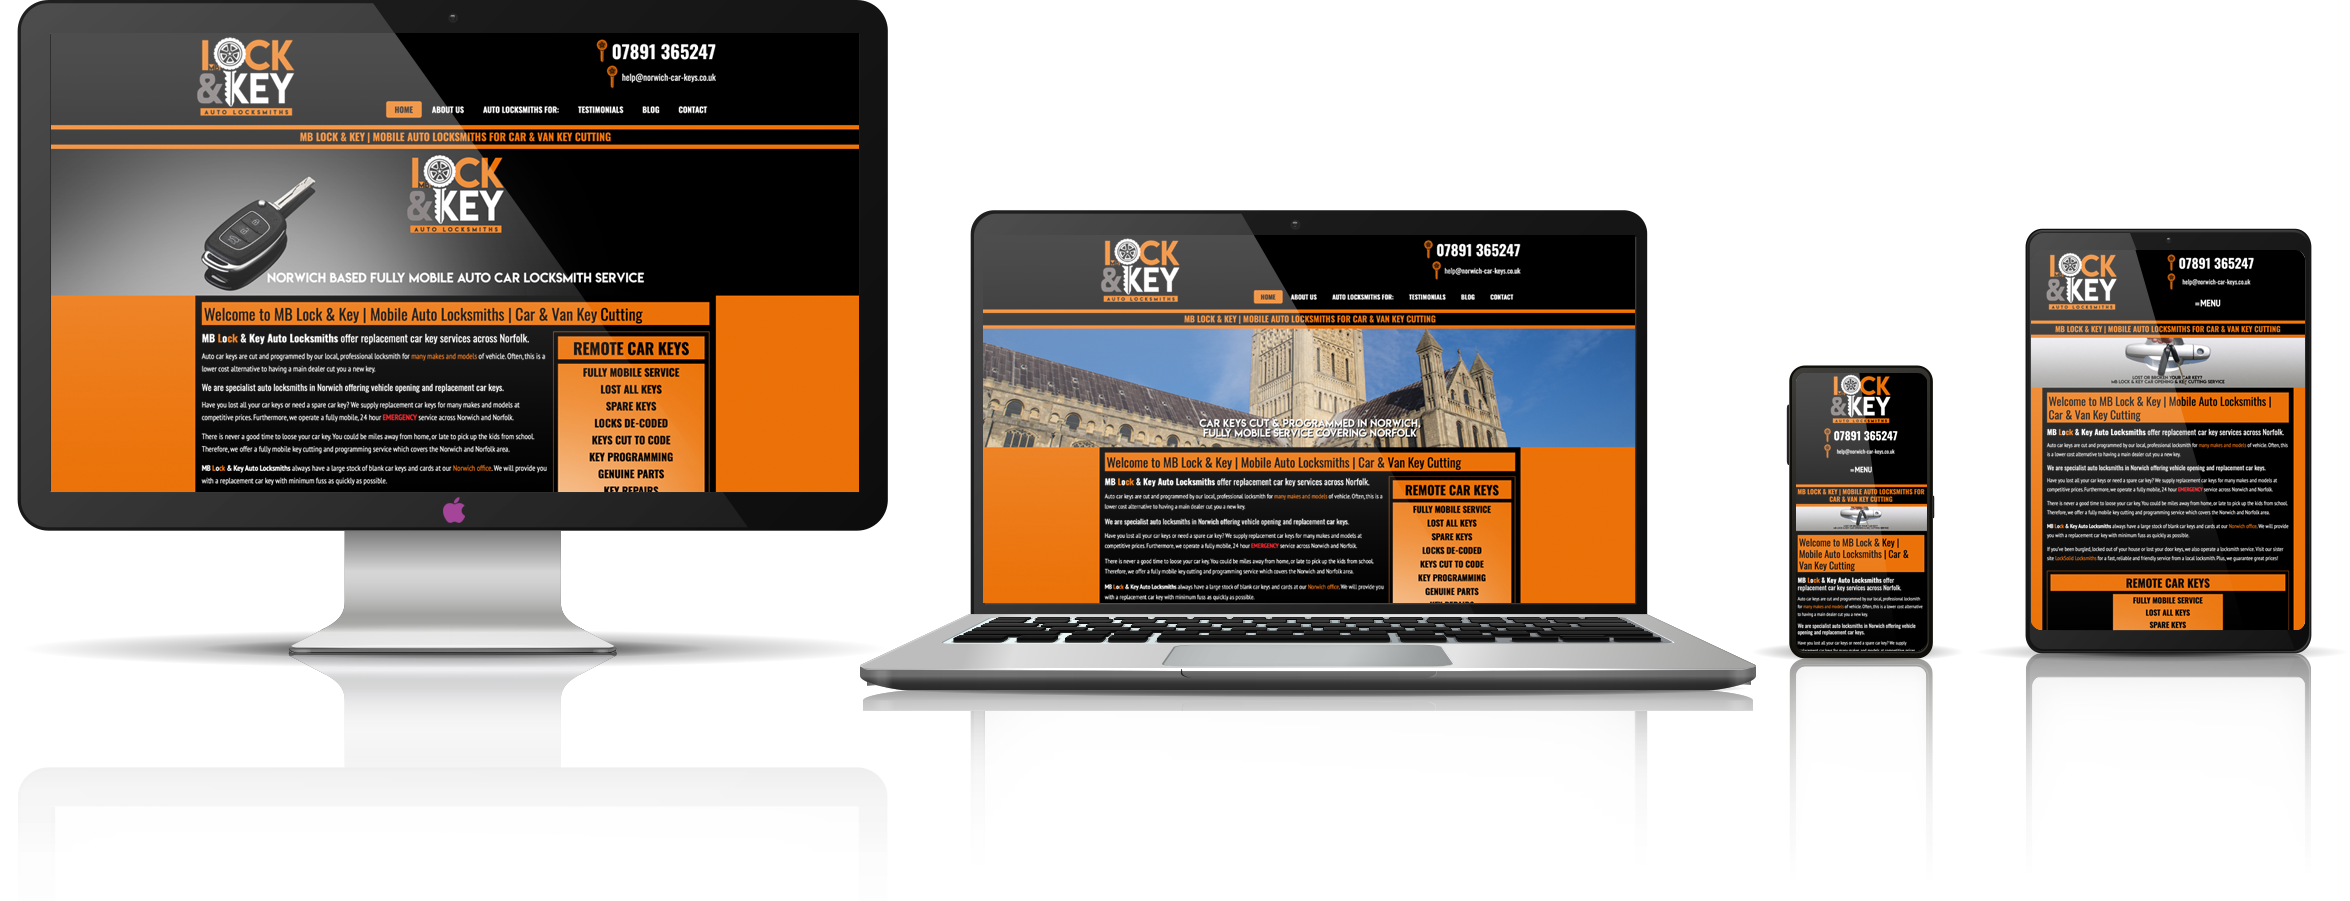 The Lock & Key fully responsive mock-up images showing desktop, laptop, tablet, and mobile phone devices.